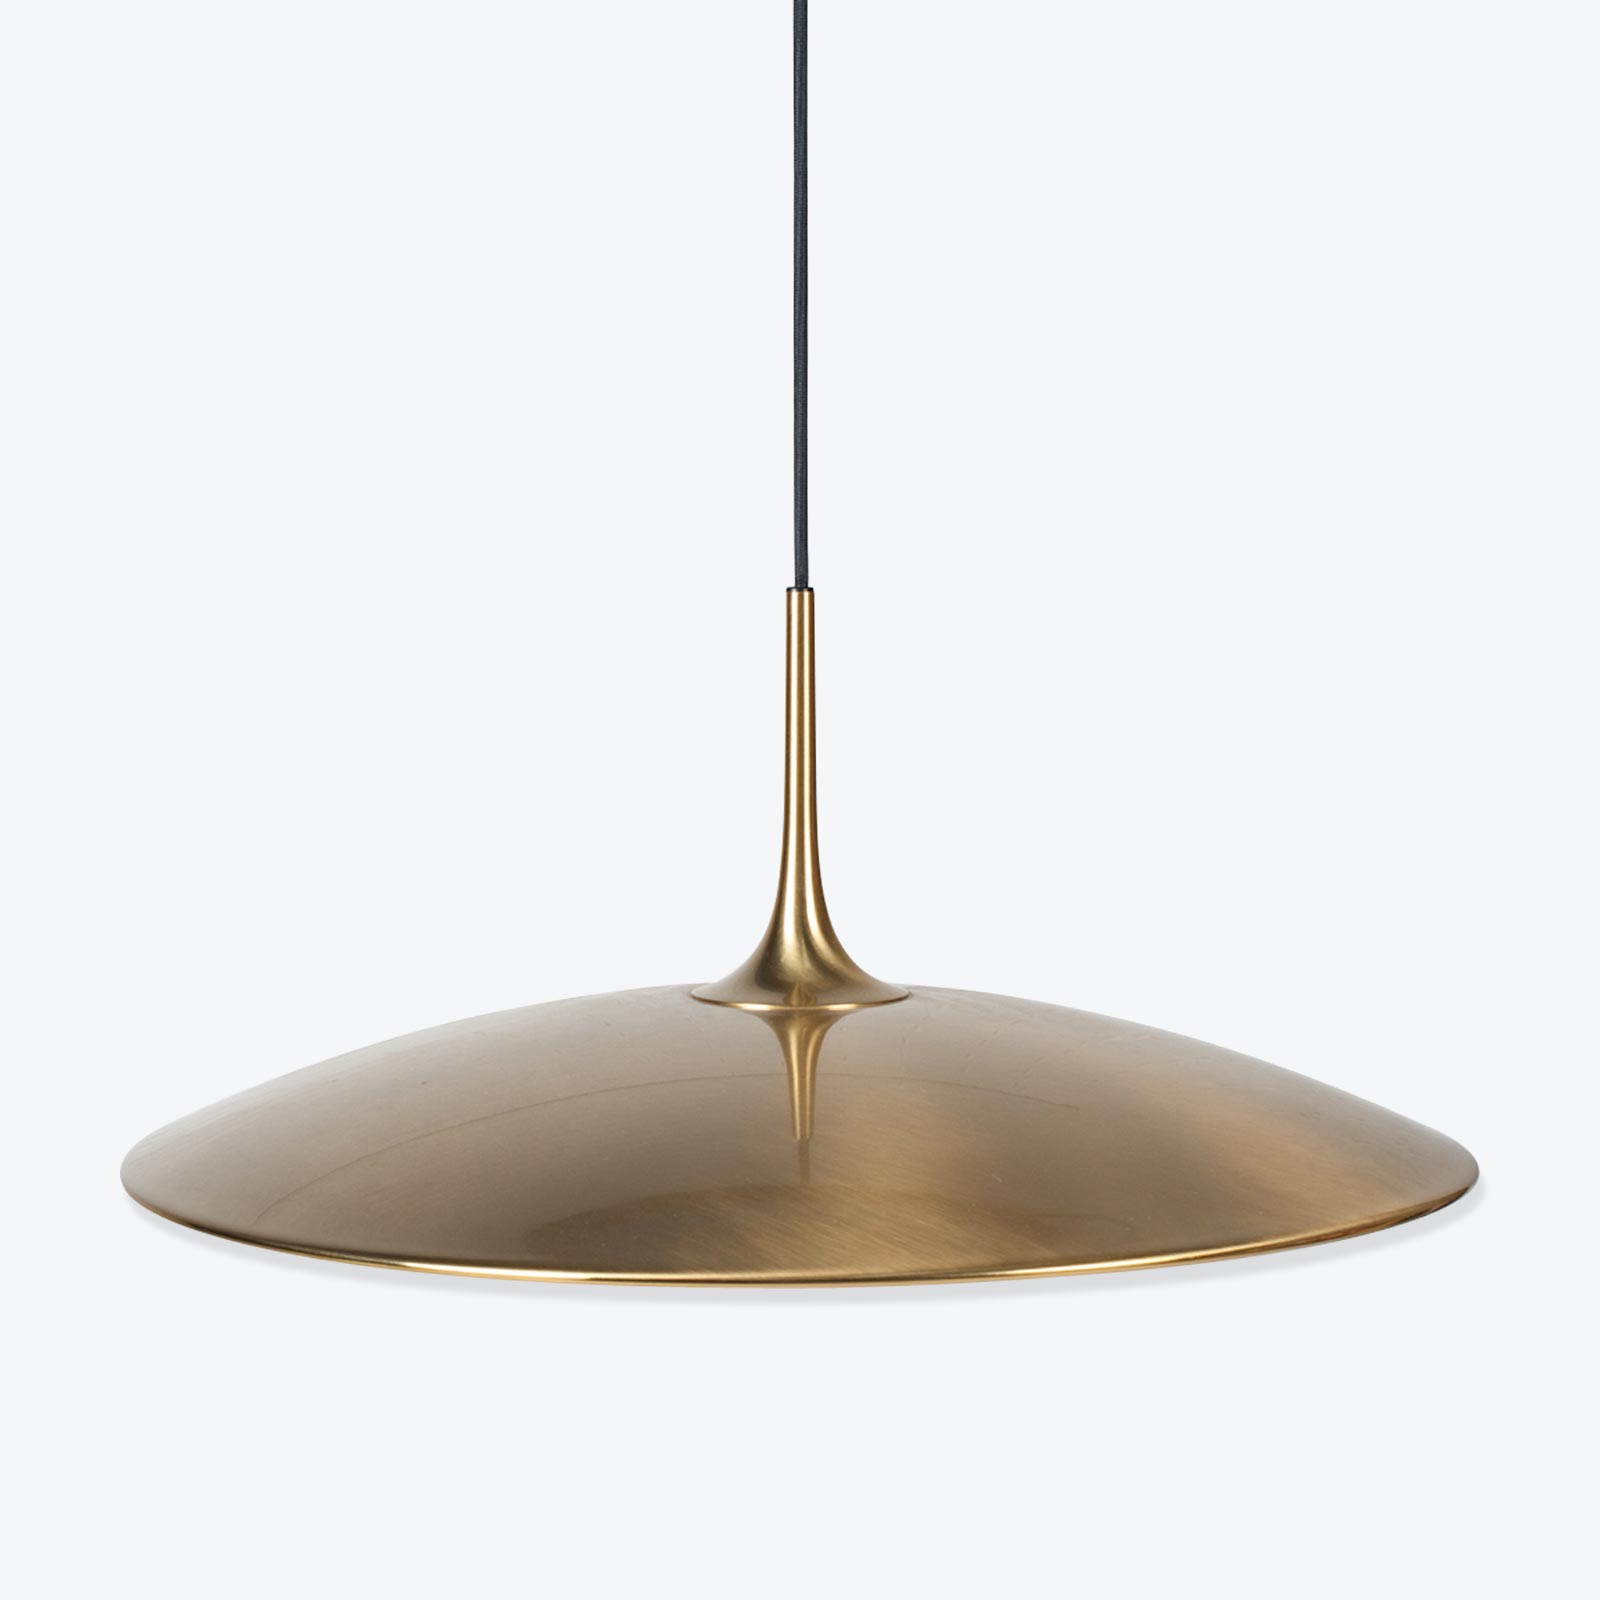 Onos 55 Counterbalance Pendant By Florian Schulz In Brass 1970s Germany 01